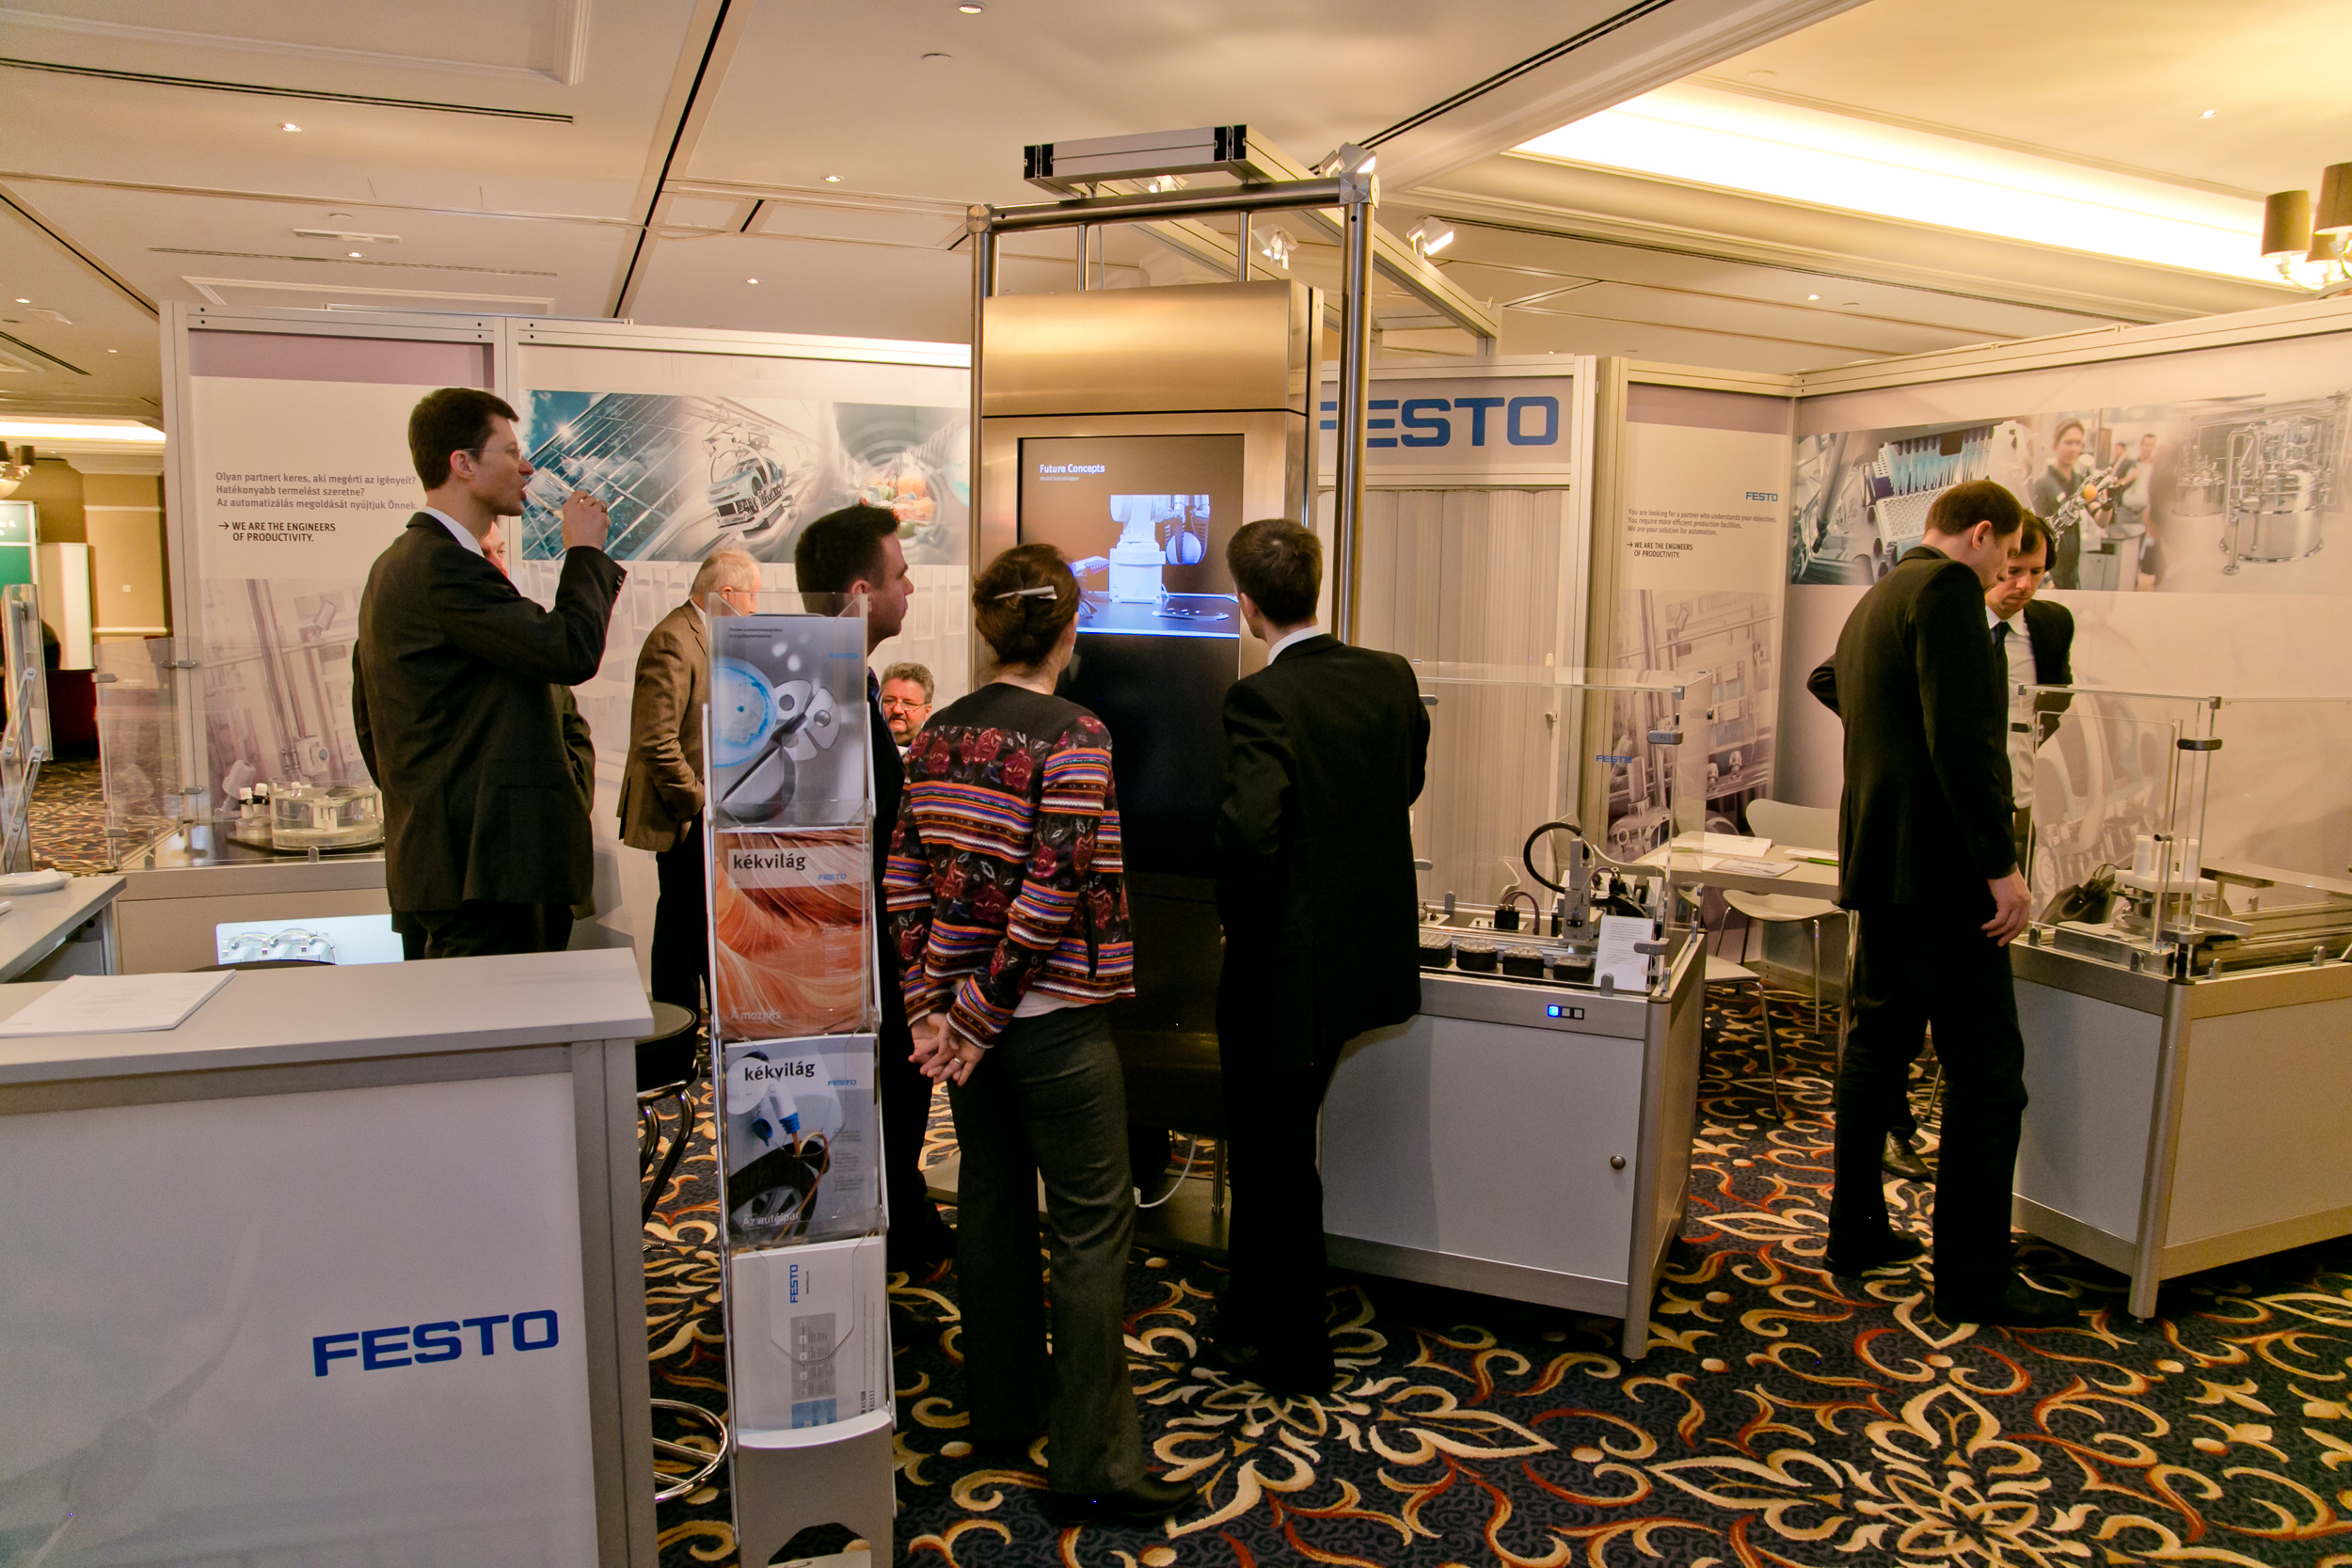 FESTO stand at PHARM Connect 2015